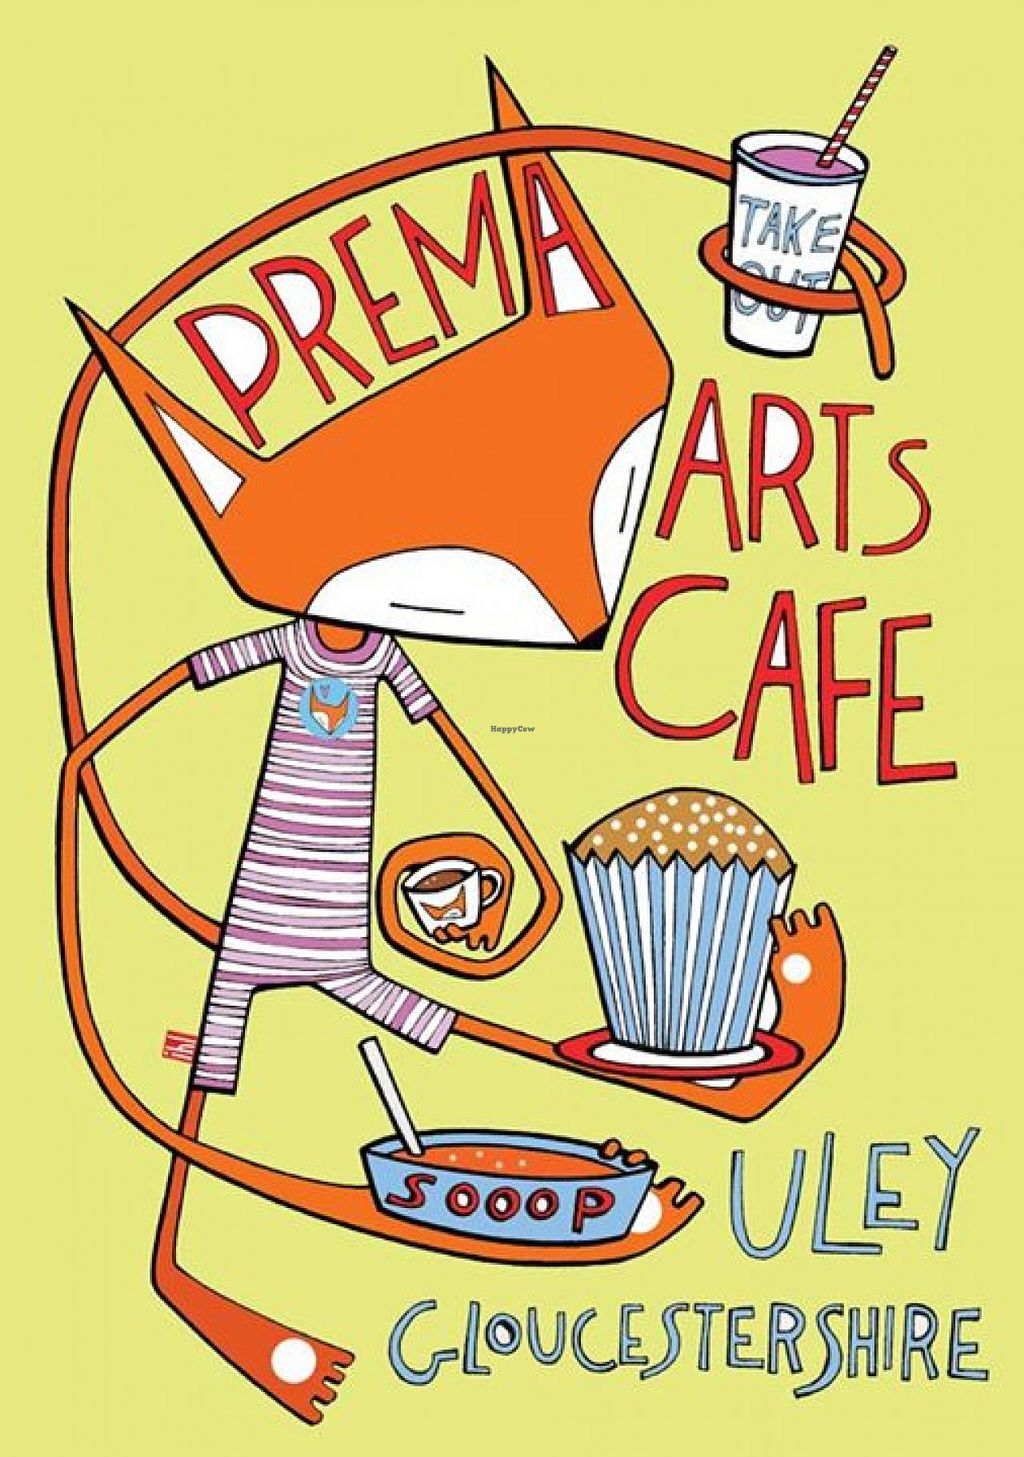 "Photo of Vestry Cafe  by <a href=""/members/profile/community"">community</a> <br/>Prema Arts Cafe Logo  <br/> November 27, 2014  - <a href='/contact/abuse/image/53181/86606'>Report</a>"